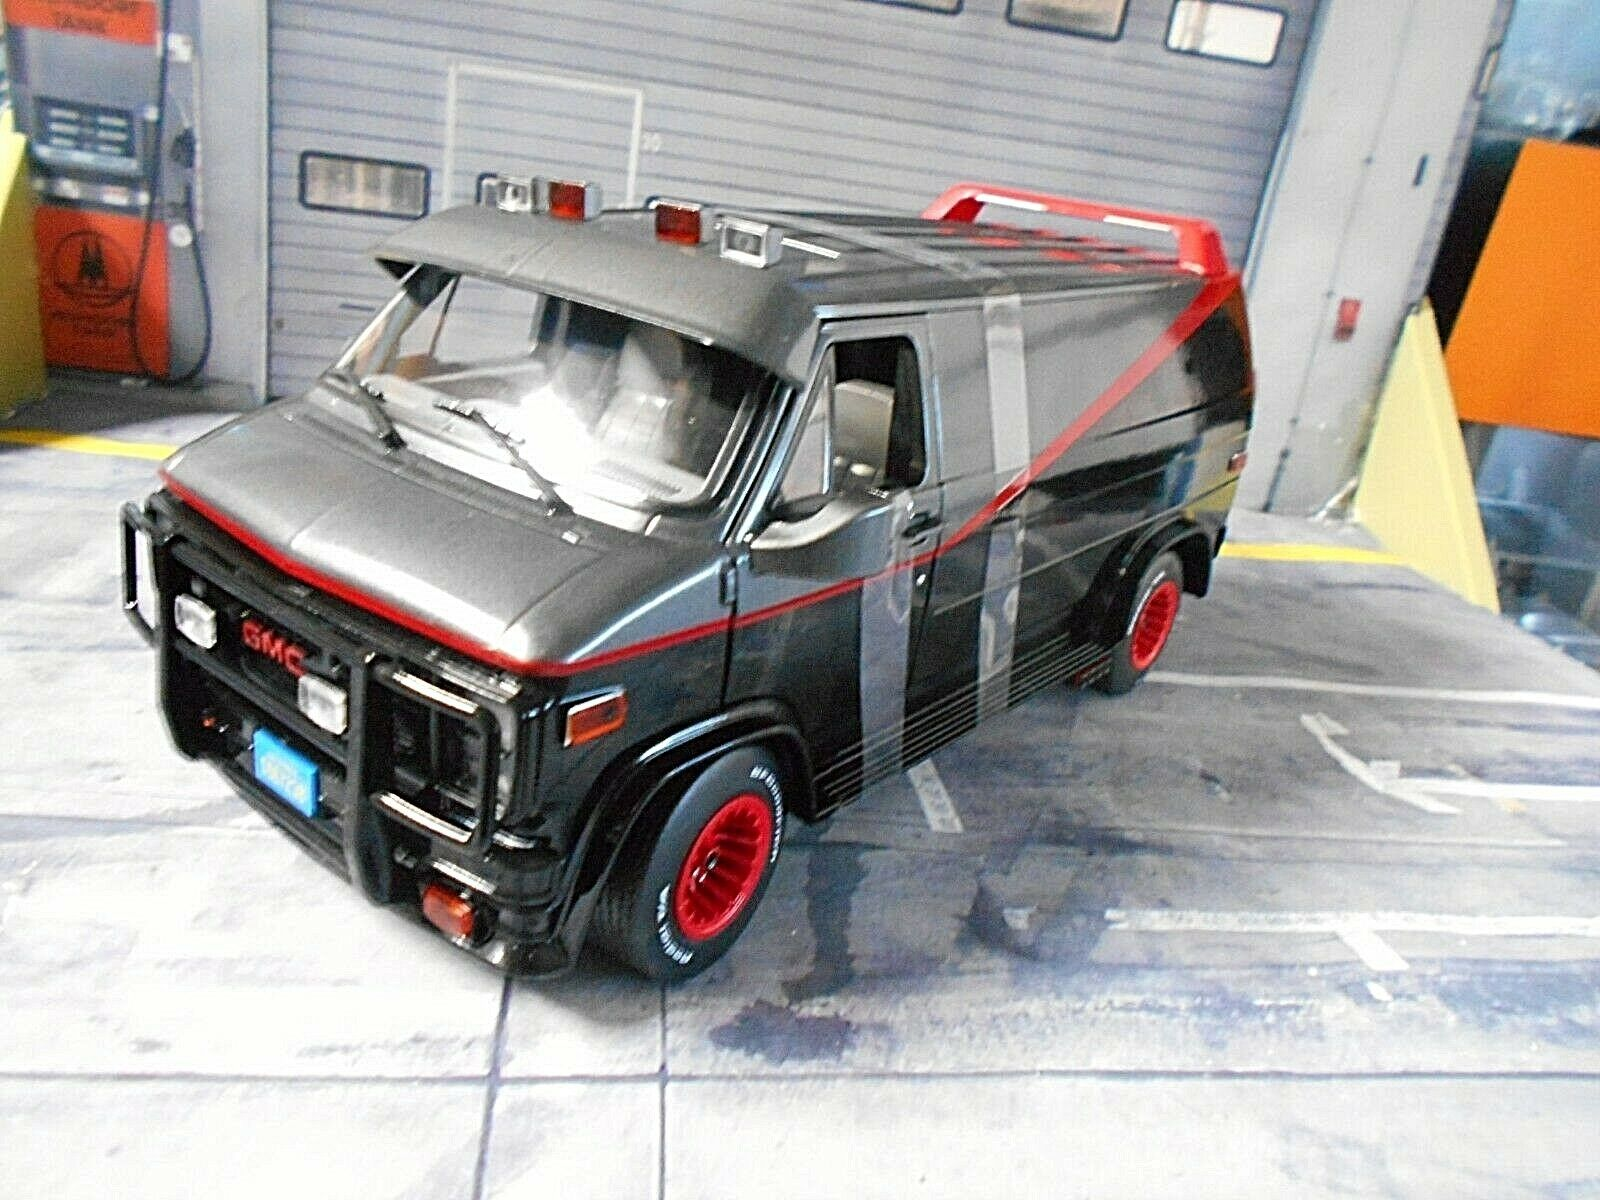 GMC Barracuda SUV VAN A-Team Movie Vandura 1983 TV Série est a vertlight 1 18